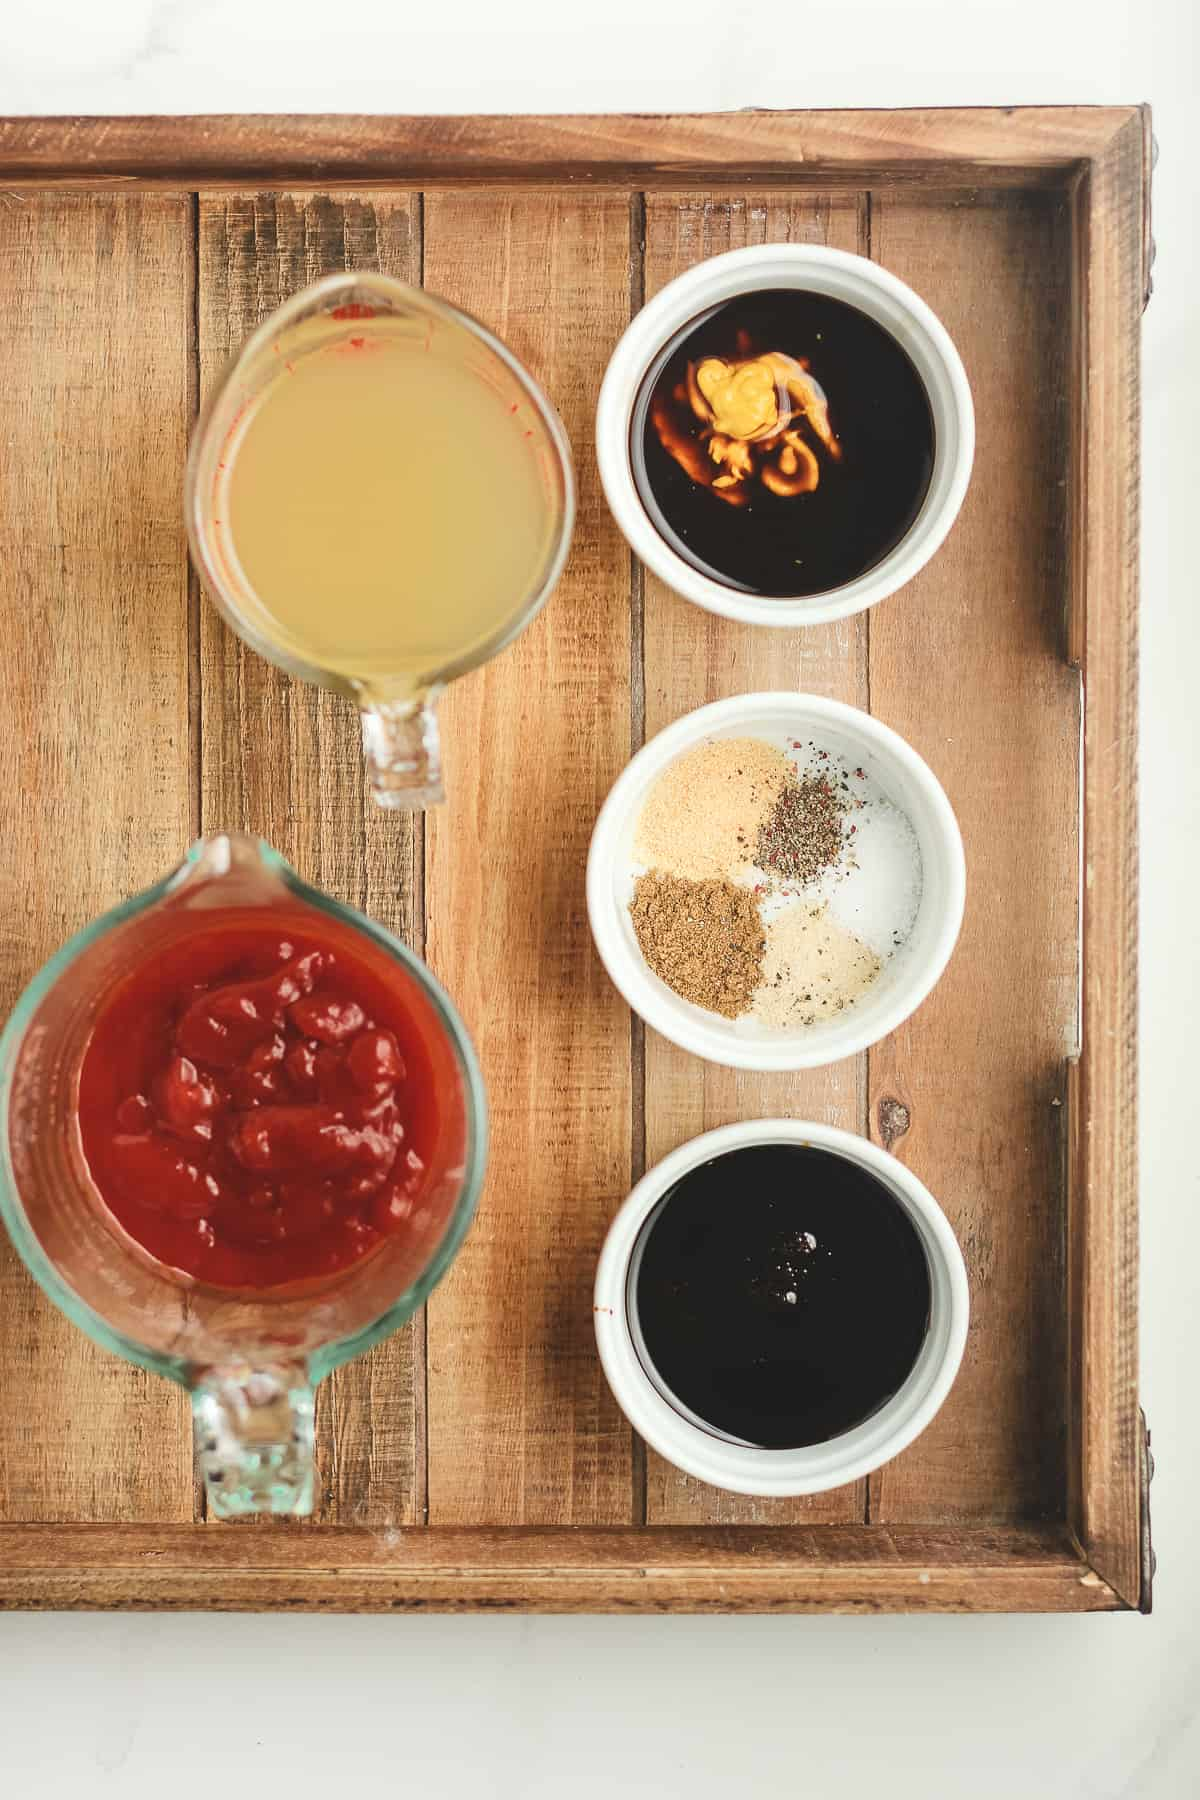 A tray of the ingredients for homemade barbecue sauce.